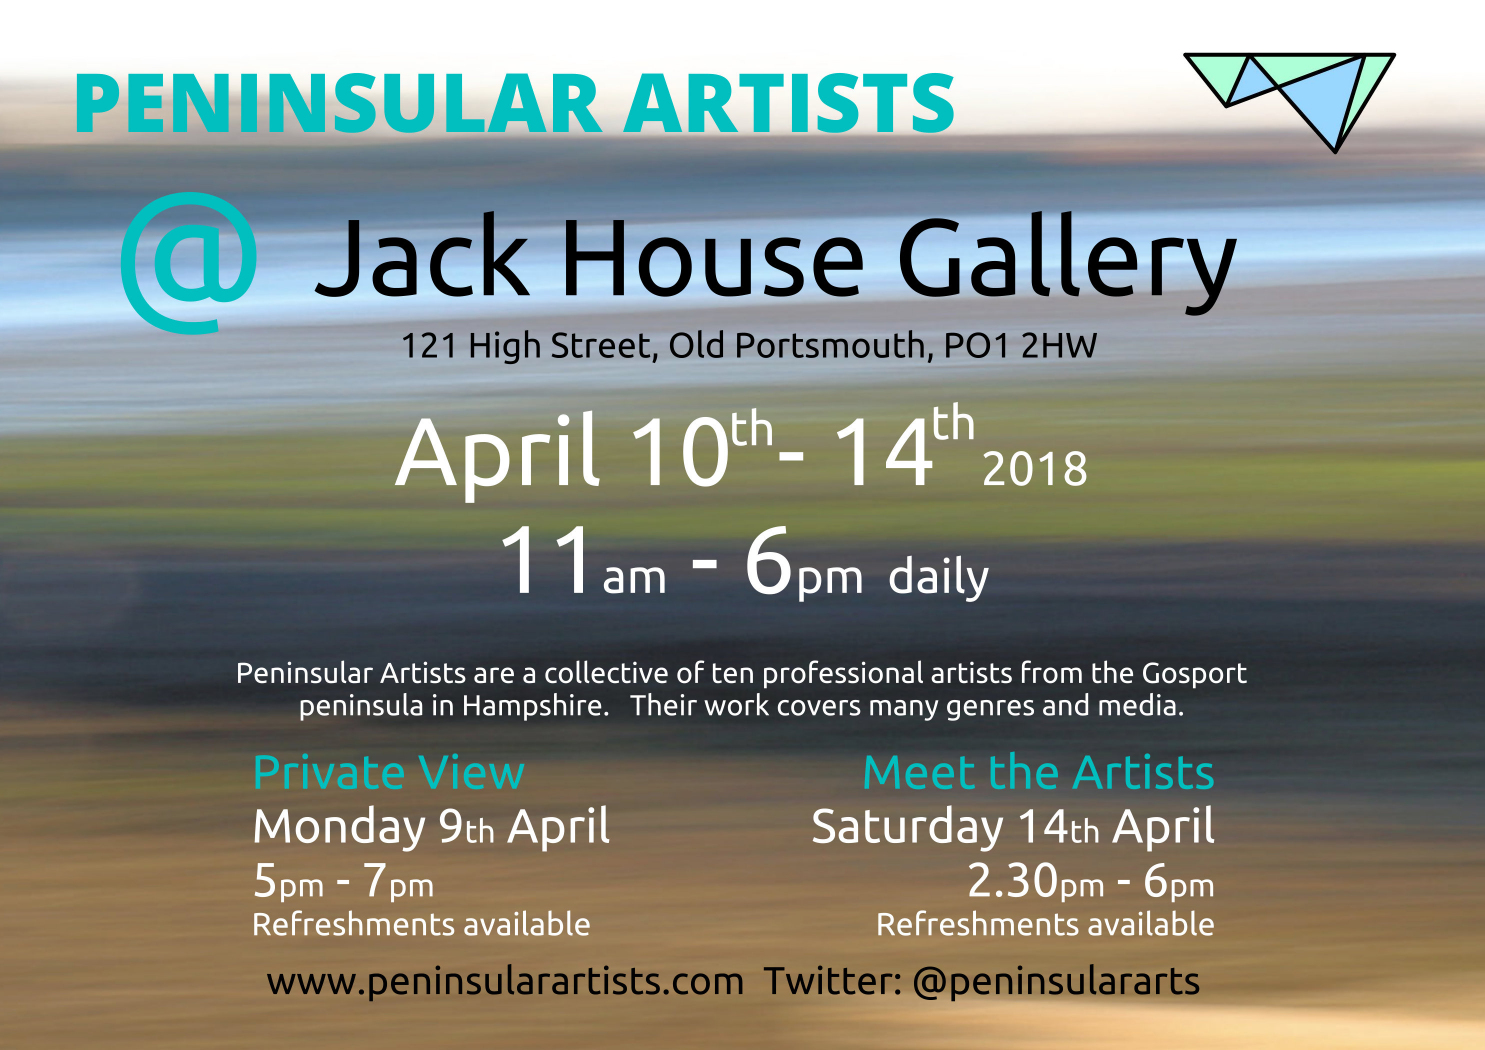 Peninsular Artists @ Jack House Gallery